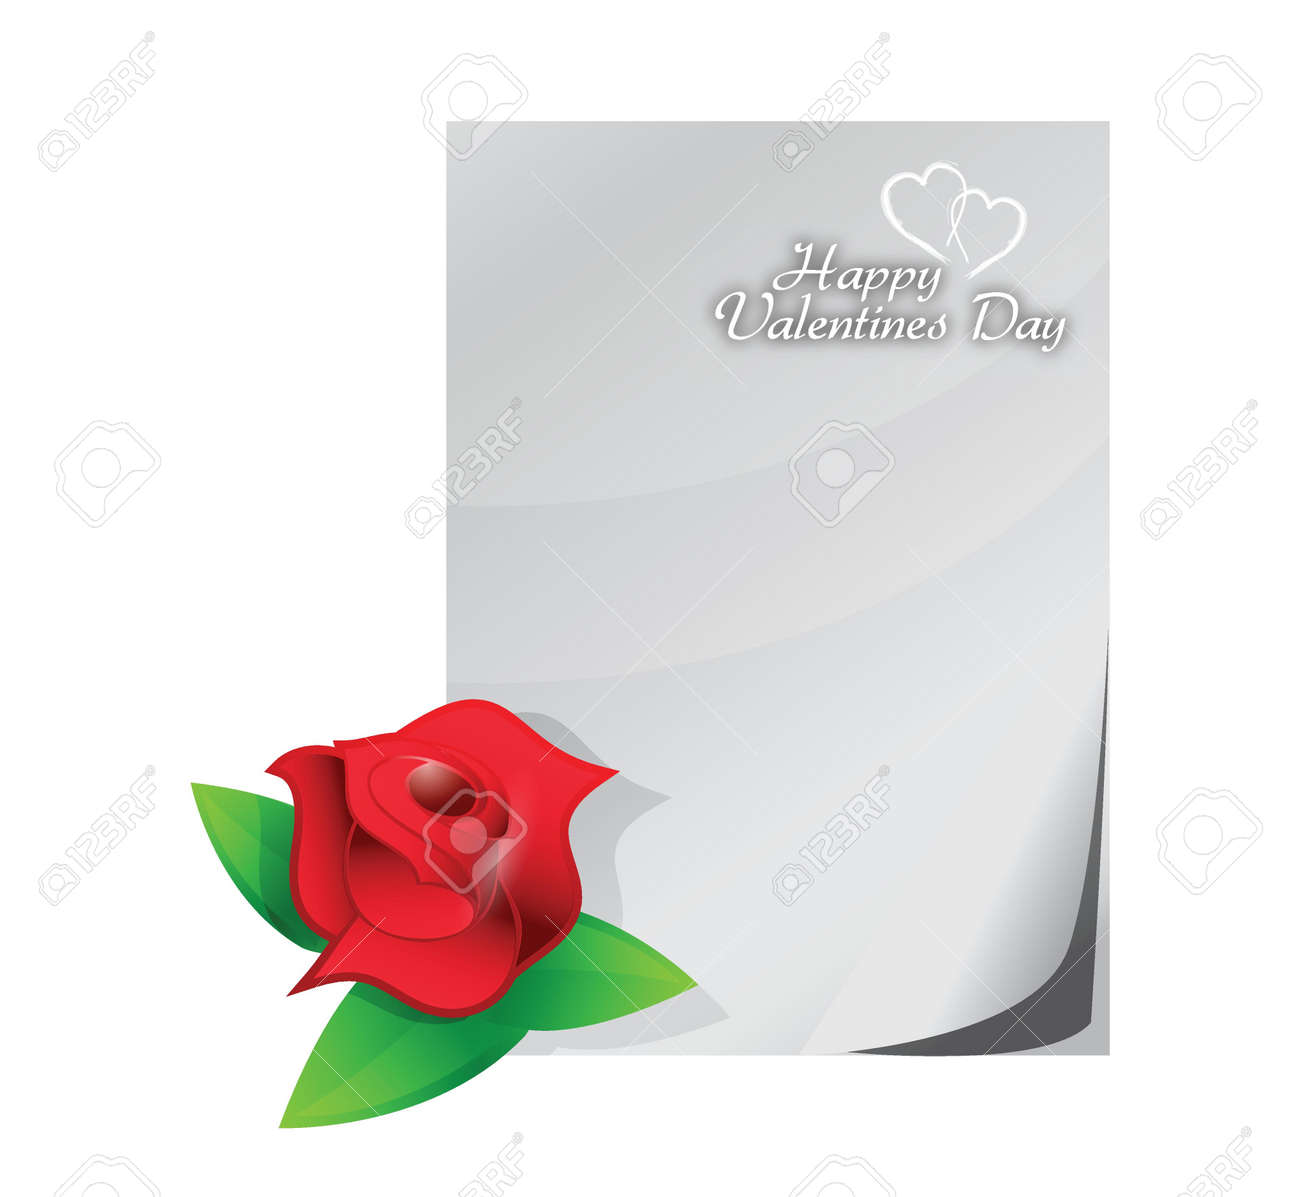 valentine red rose love letter illustration design over a white background Stock Vector - 20151946